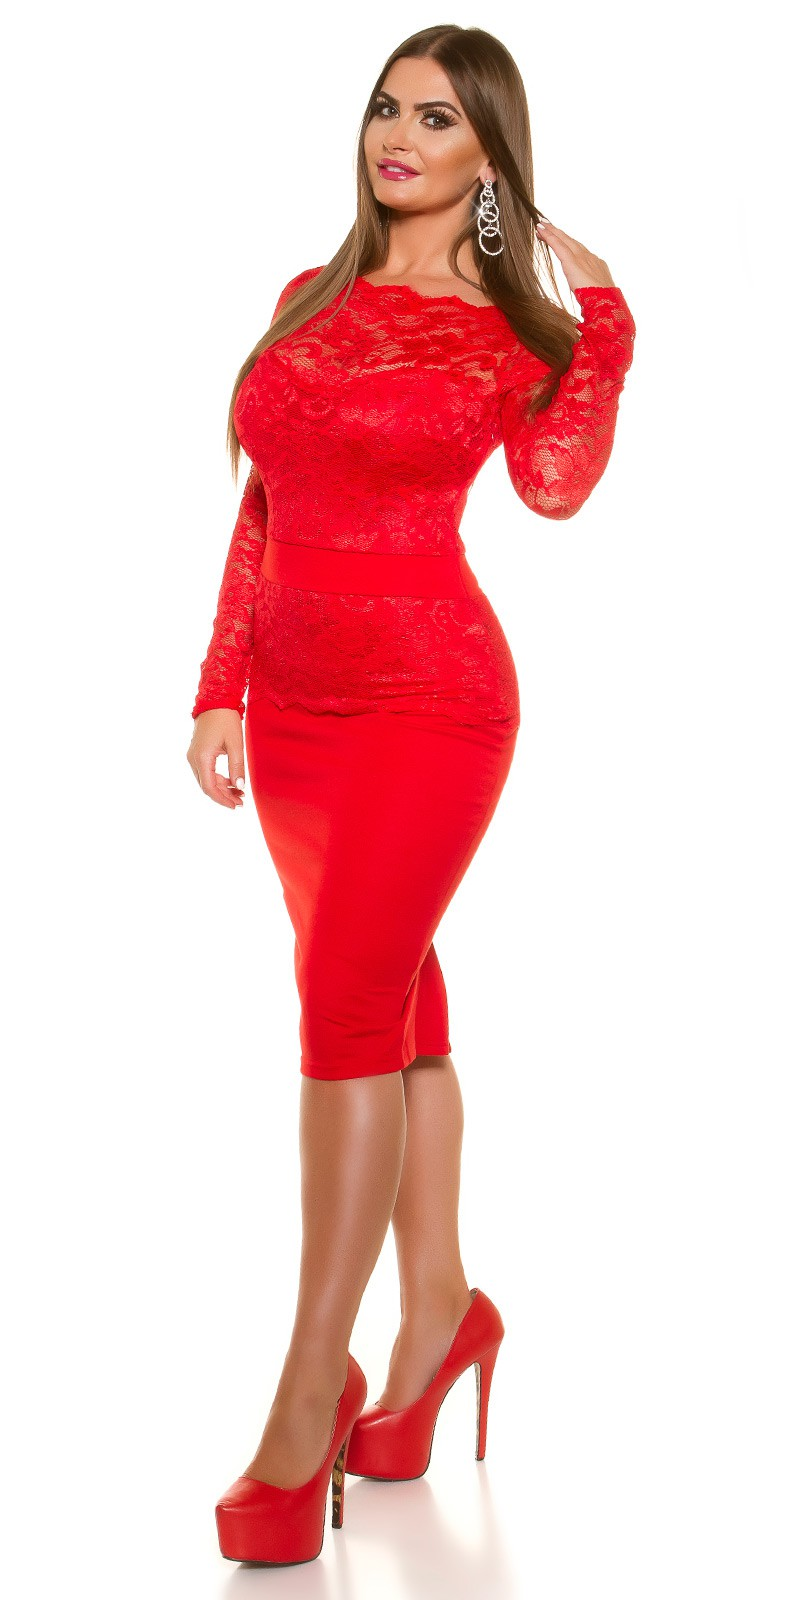 dc787965825c iiGirls Size Sexy KouCla Midi-Dress with lace  Color RED Size 16 0000K18406C ROT 25